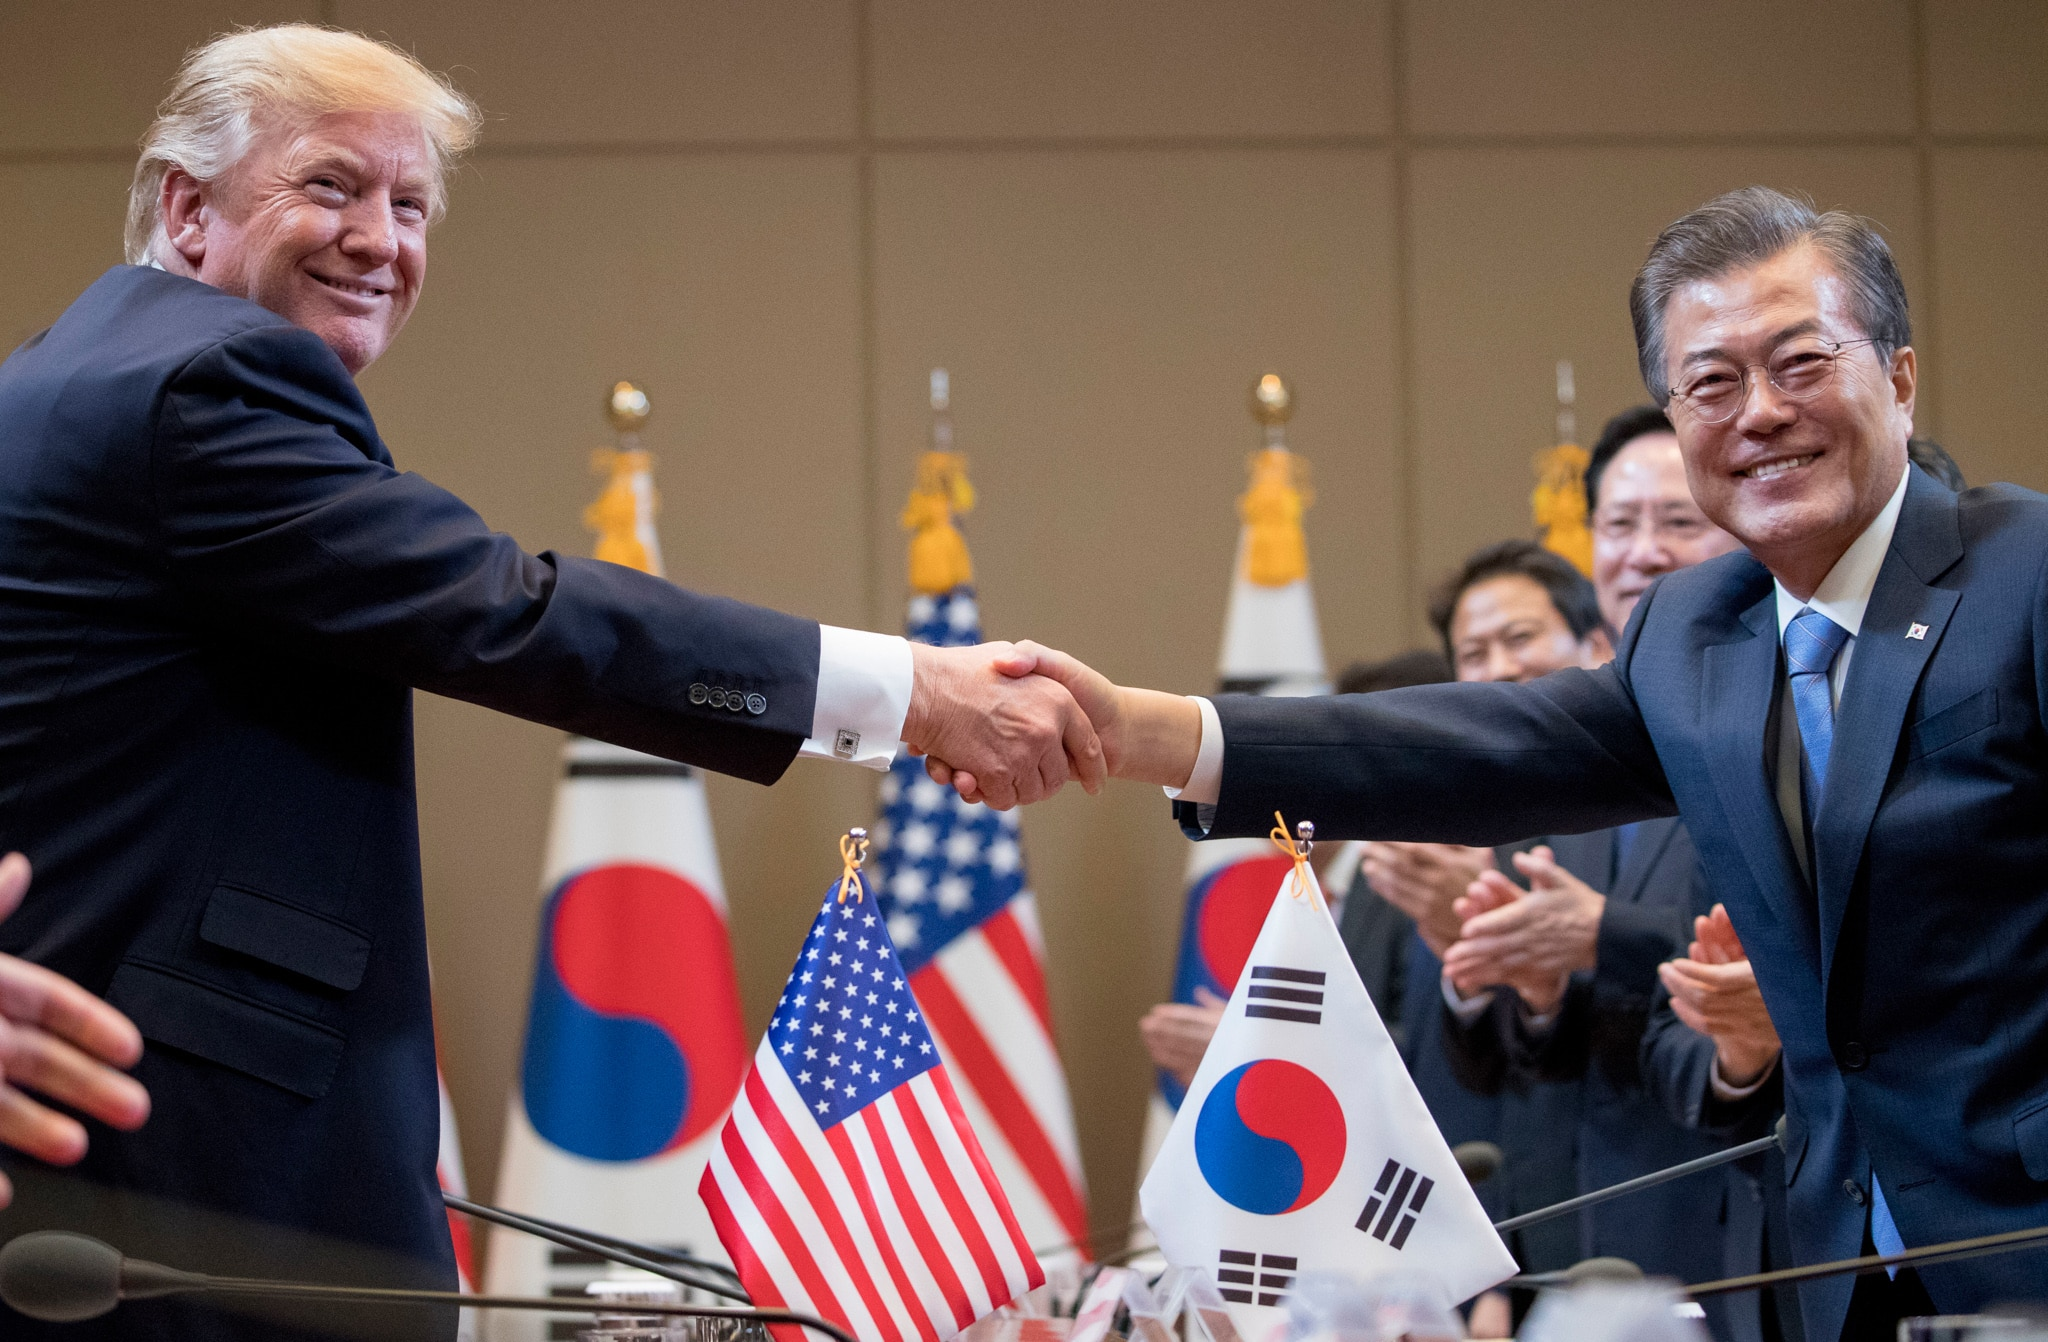 Donald Trump shaking hands with Moon Jae-in (© Andrew Harnik/AP Images)